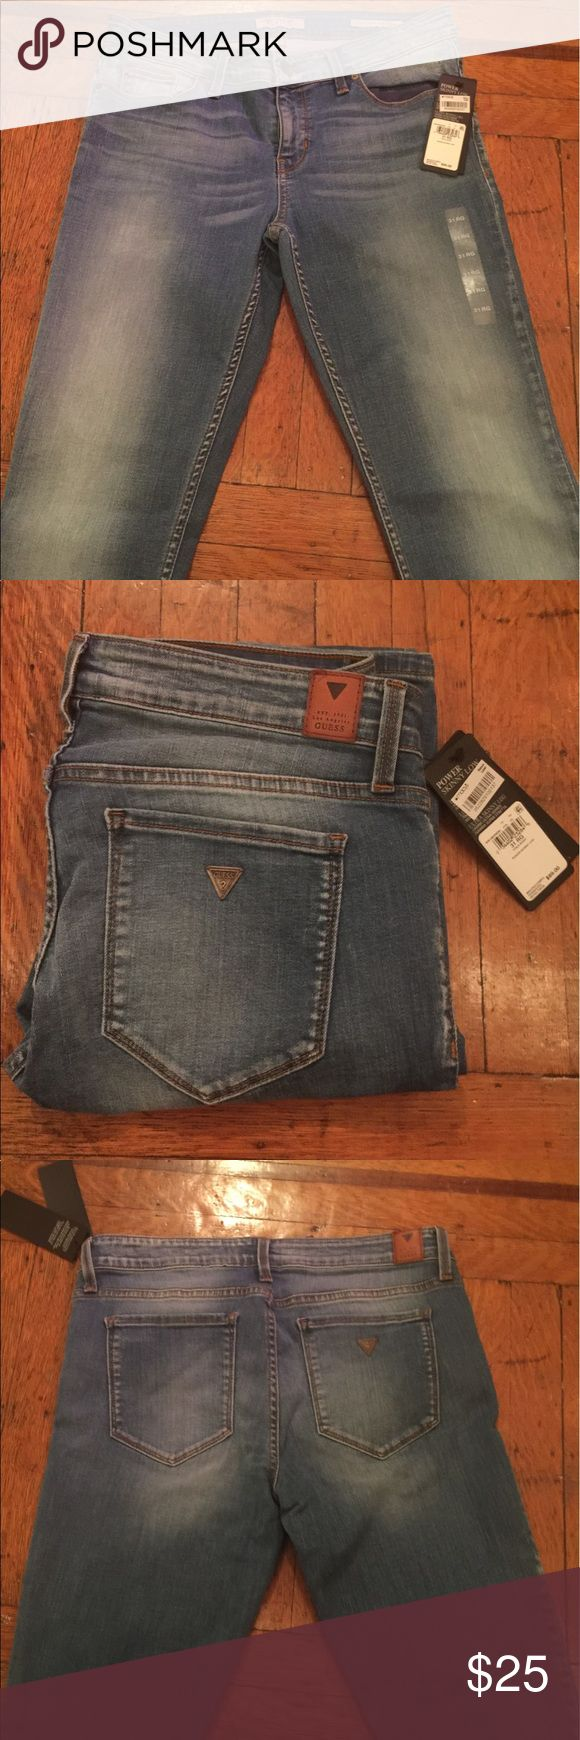 Guess Jeans Women's Guess Jeans Size 31 - Power Skinny, Viola Wash. Brand new with tags! Guess Jeans Skinny